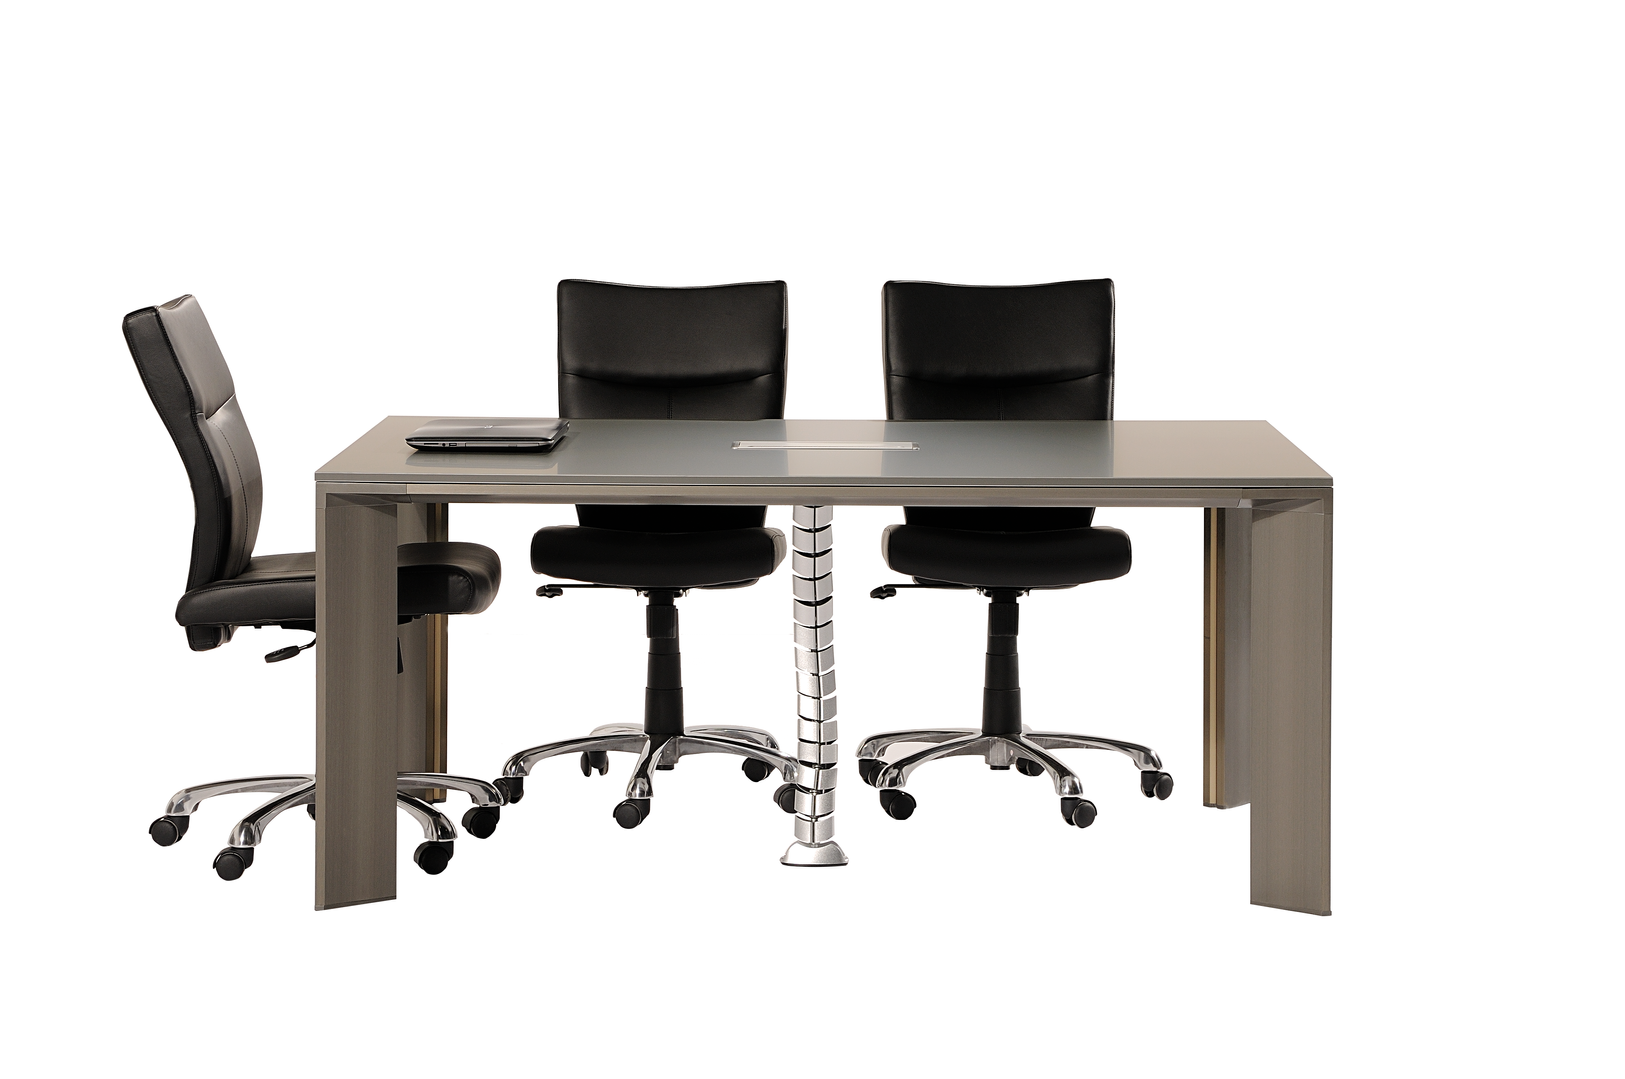 Conference table, boardroom table, meeting table, rectangular table, square table